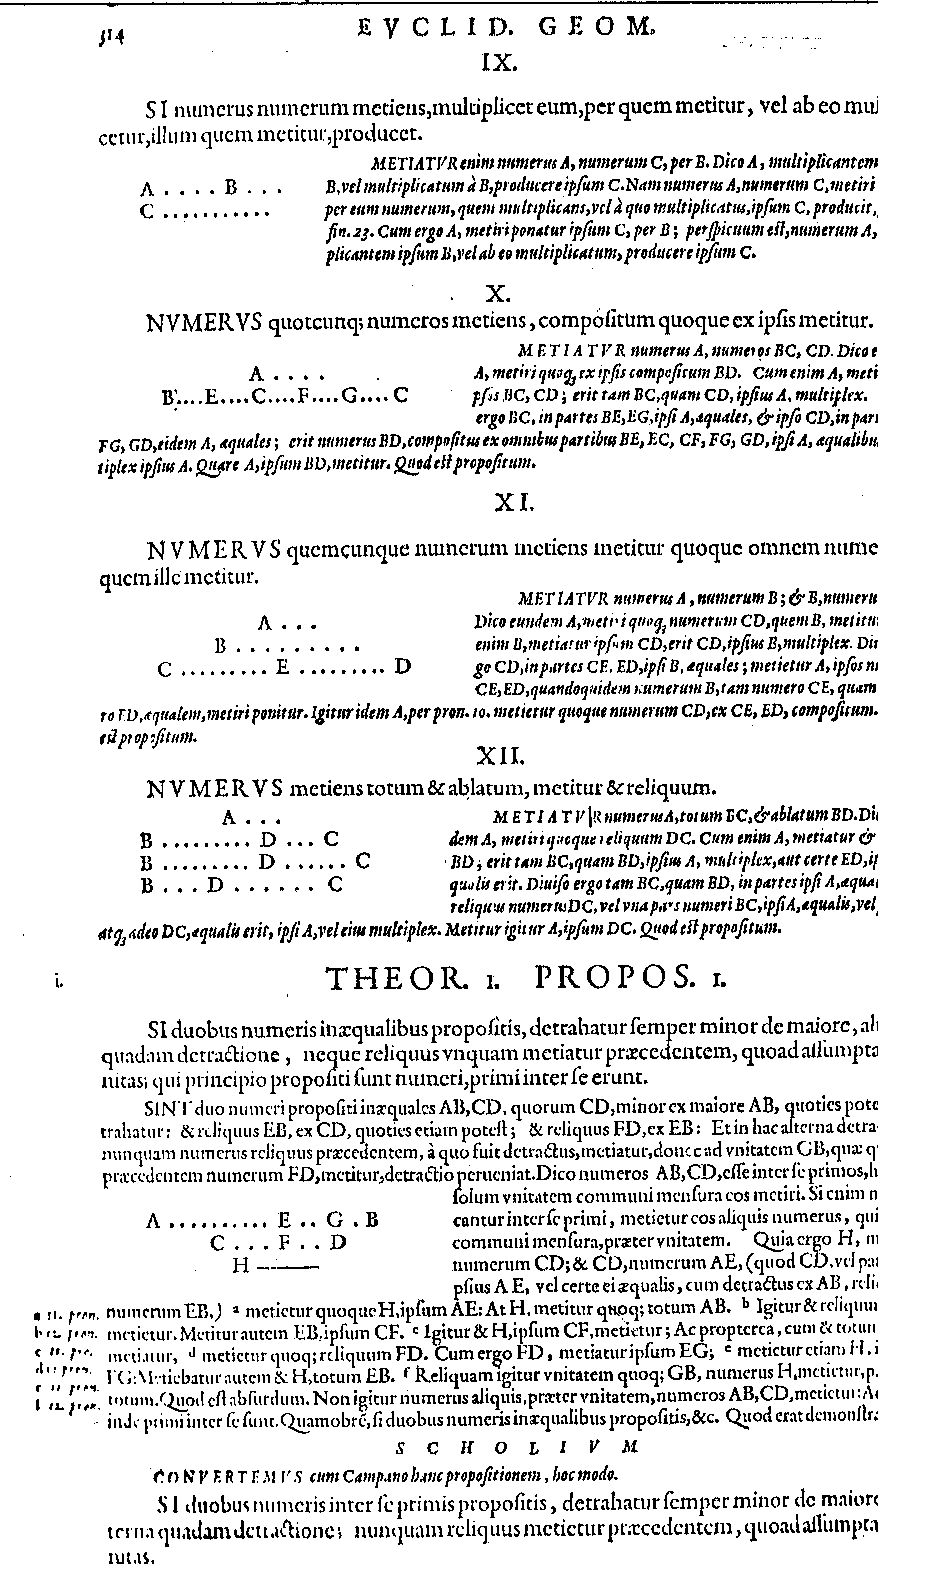 Notes on euclid